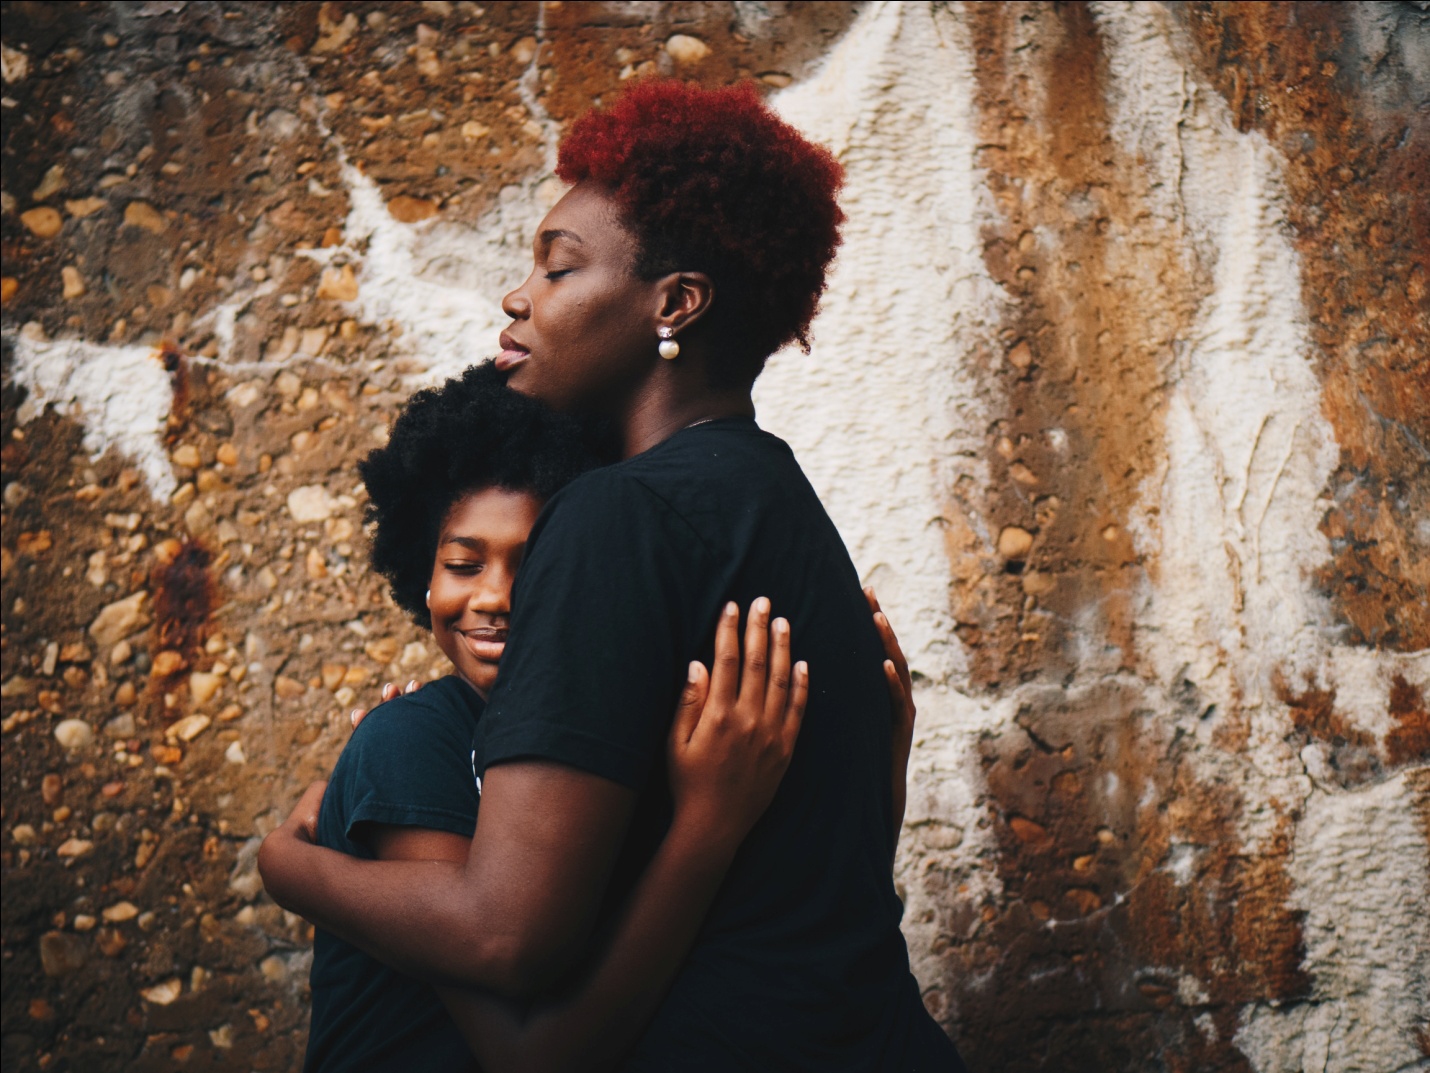 The Connection between Family Support & Mental Well-being for LGBTQ+ Youth